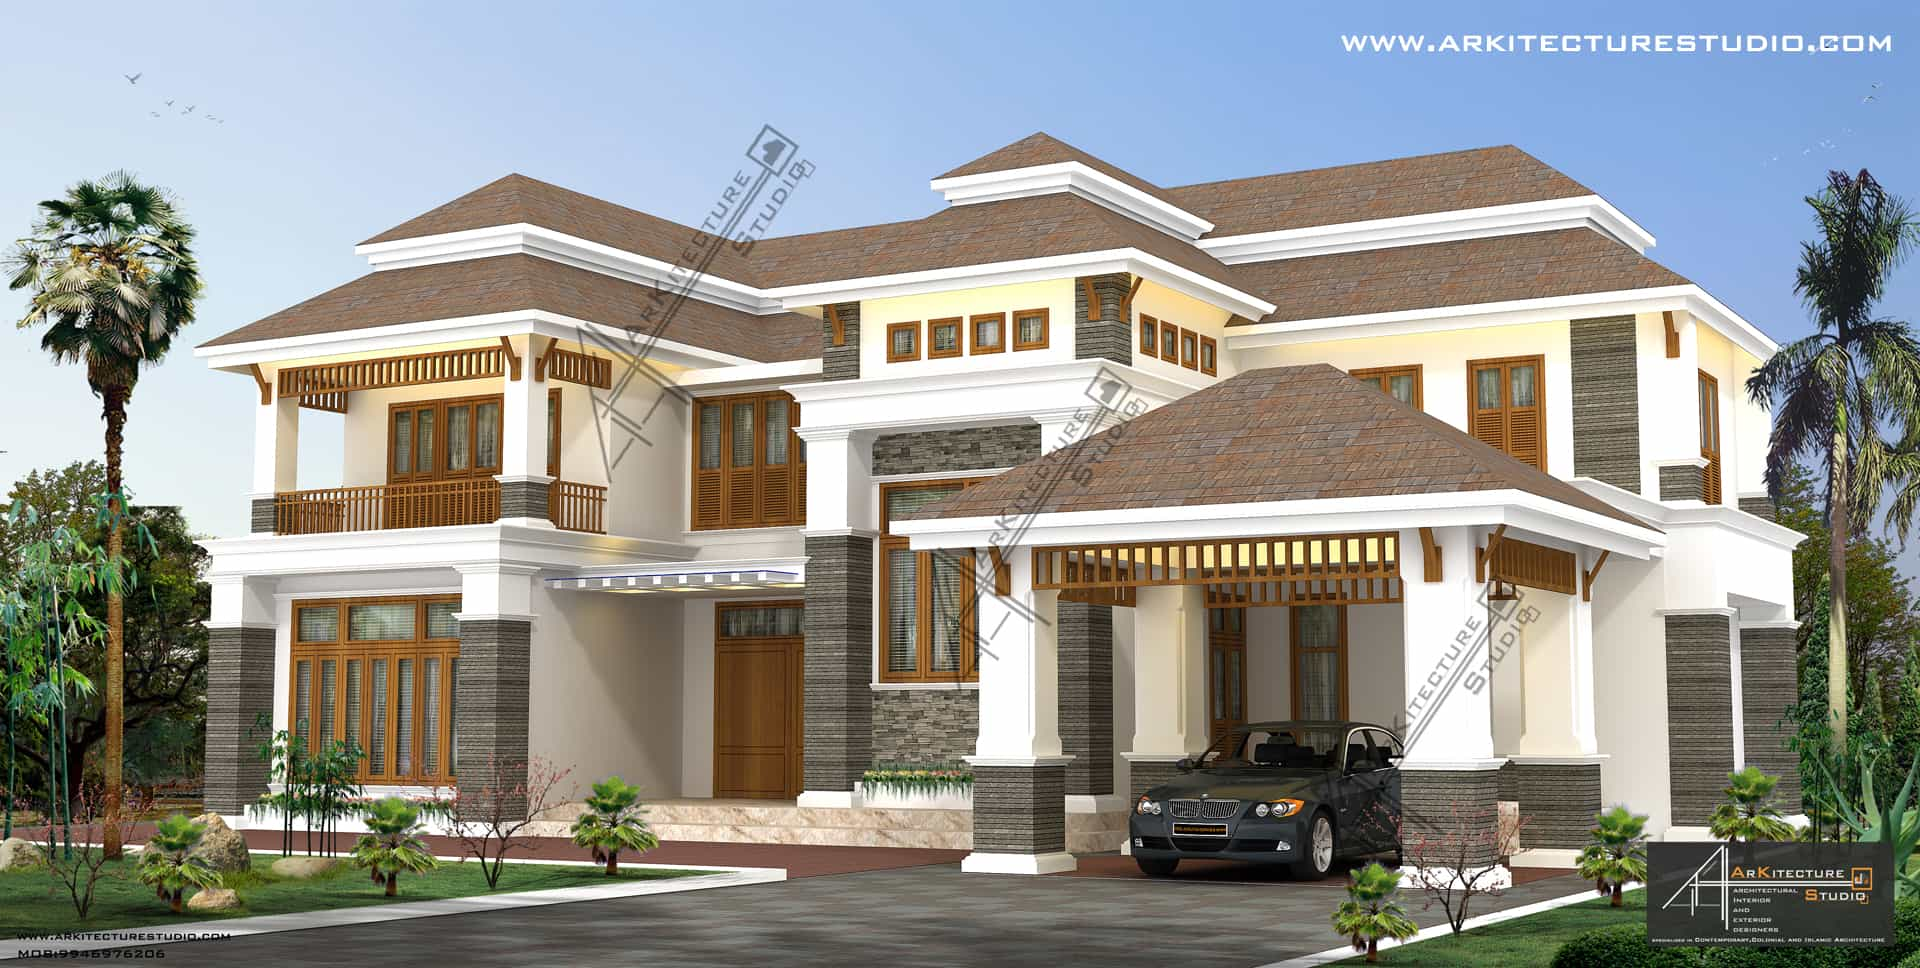 Colonial style house designs in kerala at 3500 sqft 5000 for 5000 sq ft modern house plans